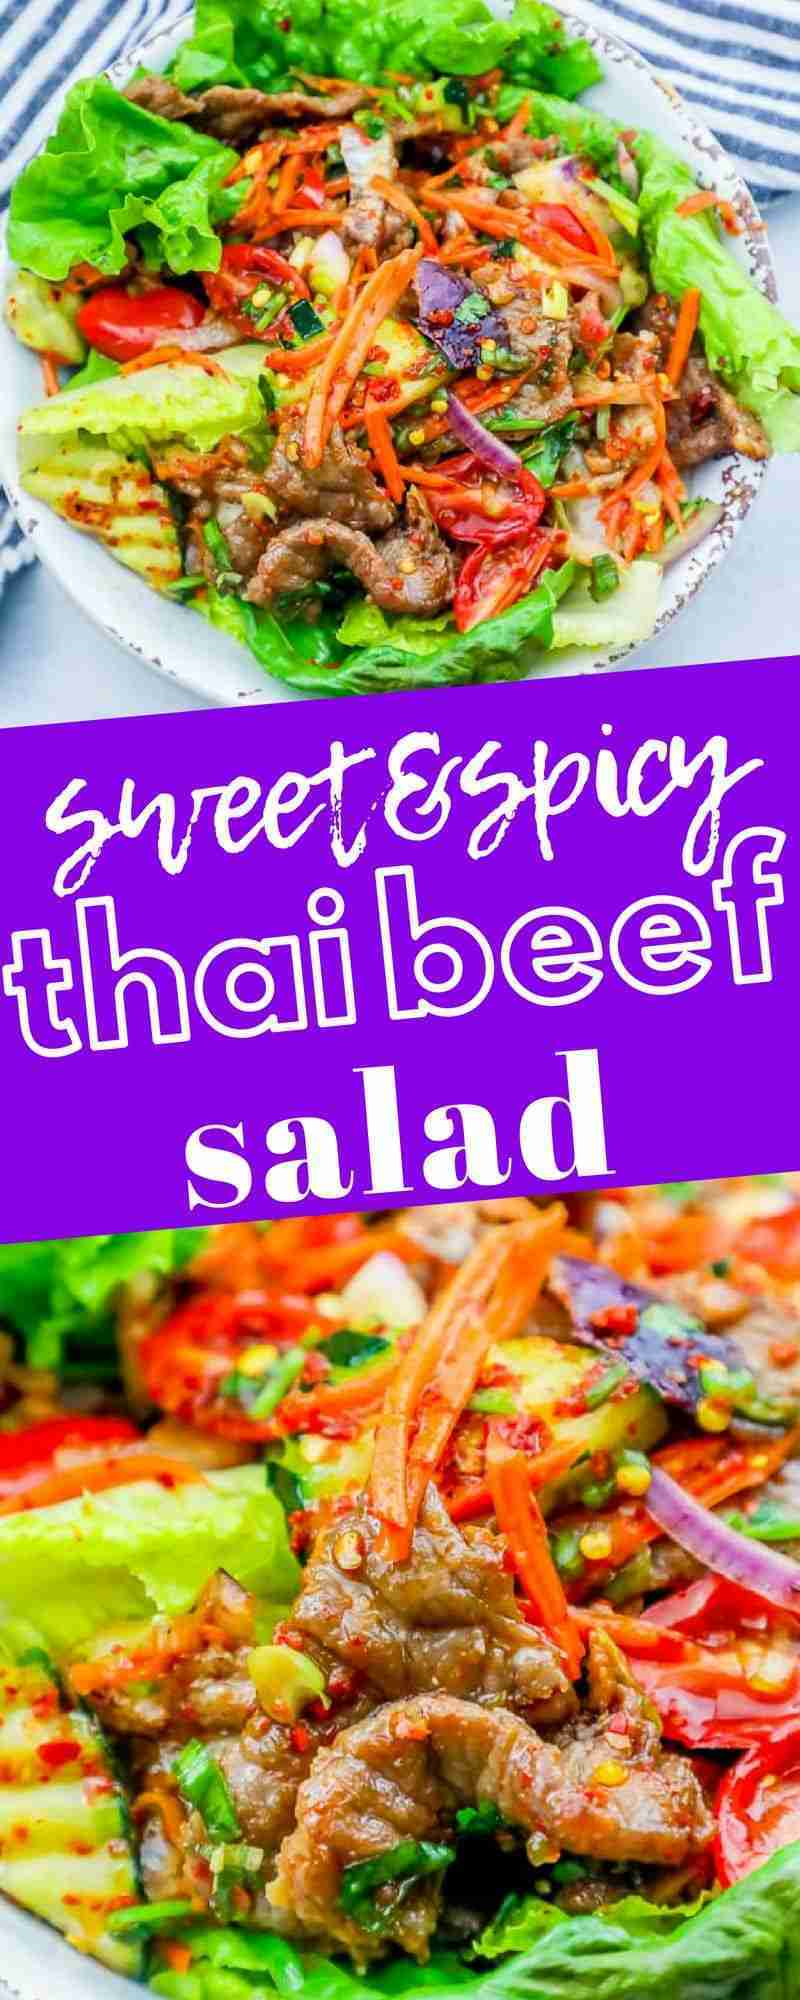 Easy Cold Spicy Thai Beef Salad Recipe – Thai Food Takeout Copycat